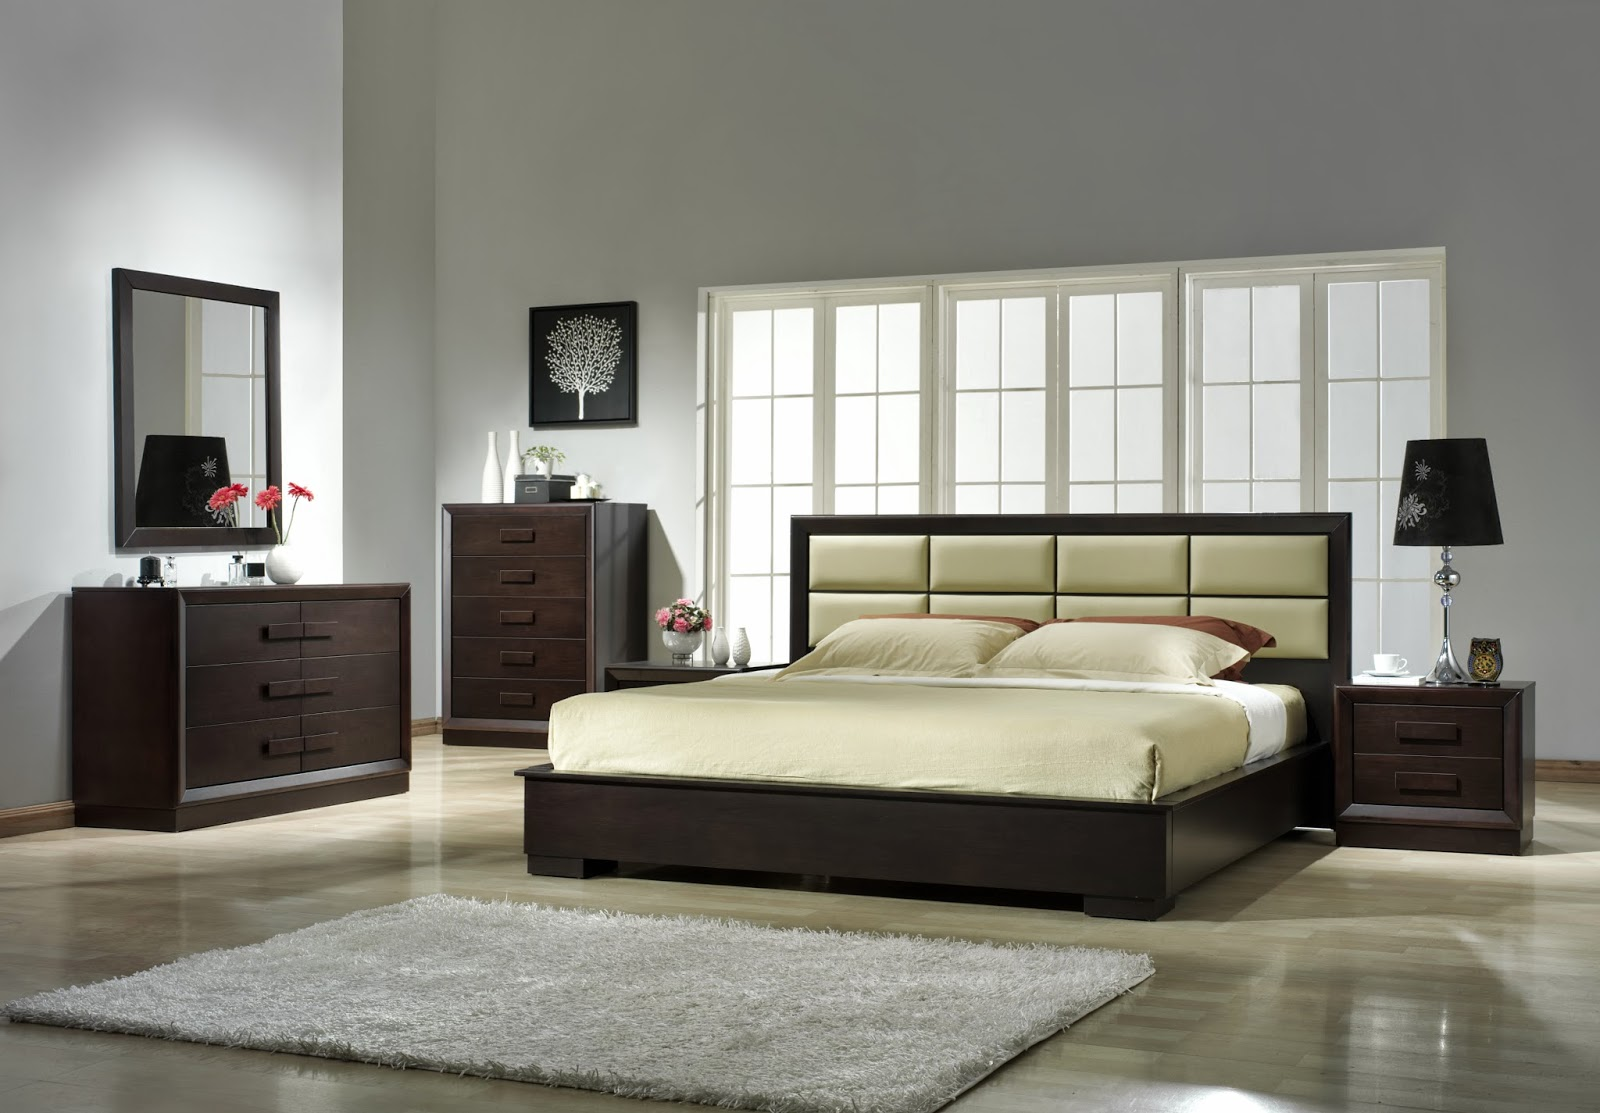 Taft Furniture Bedroom Sets Bedroom Furniture Cheap Popular Interior House Ideas